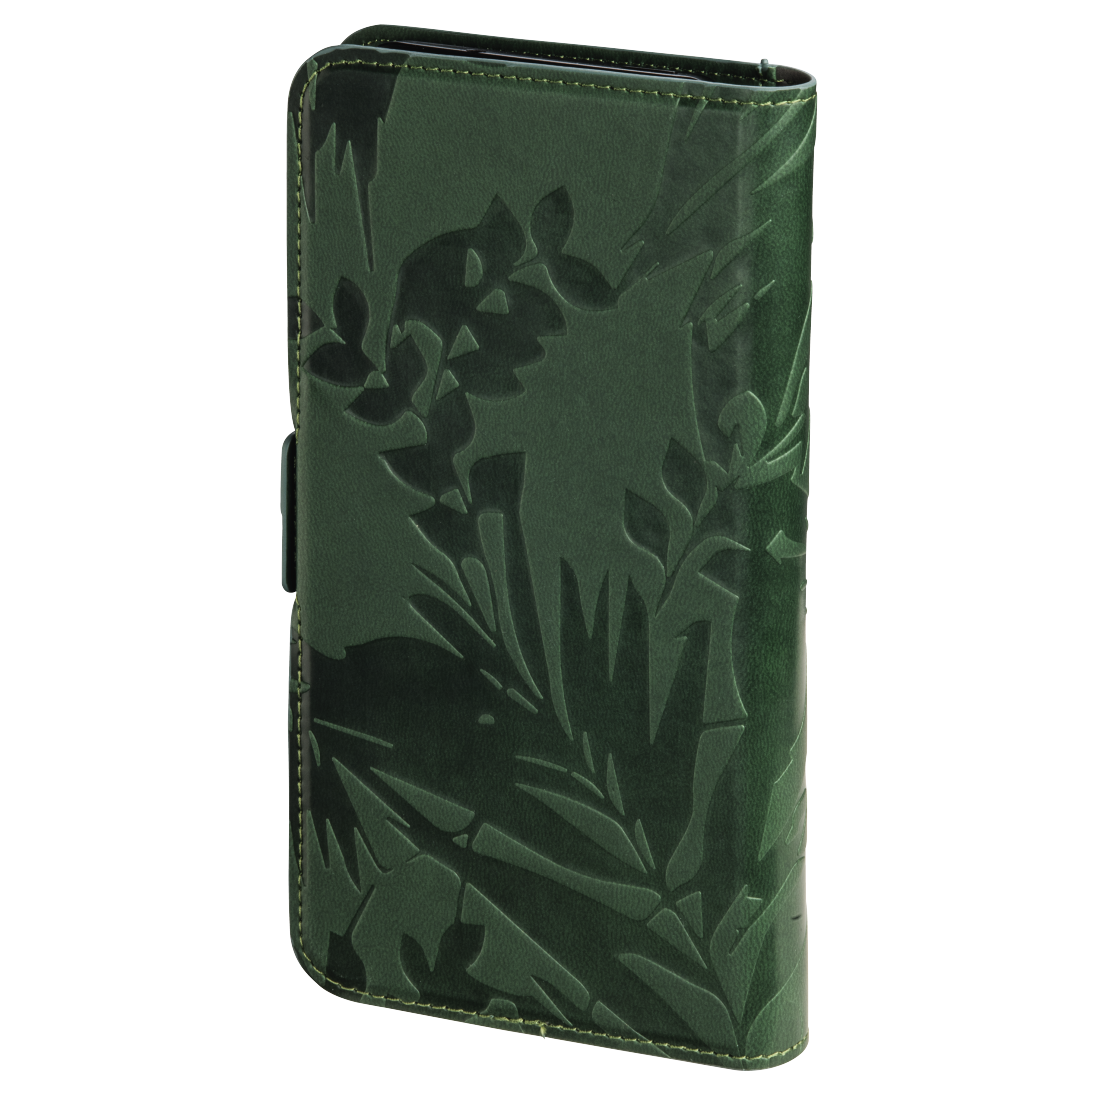 abx4 High-Res Image4 - Hama, Smart Move - Jungle Leaves Booklet, size XXL (5.1 – 5.8), dark green